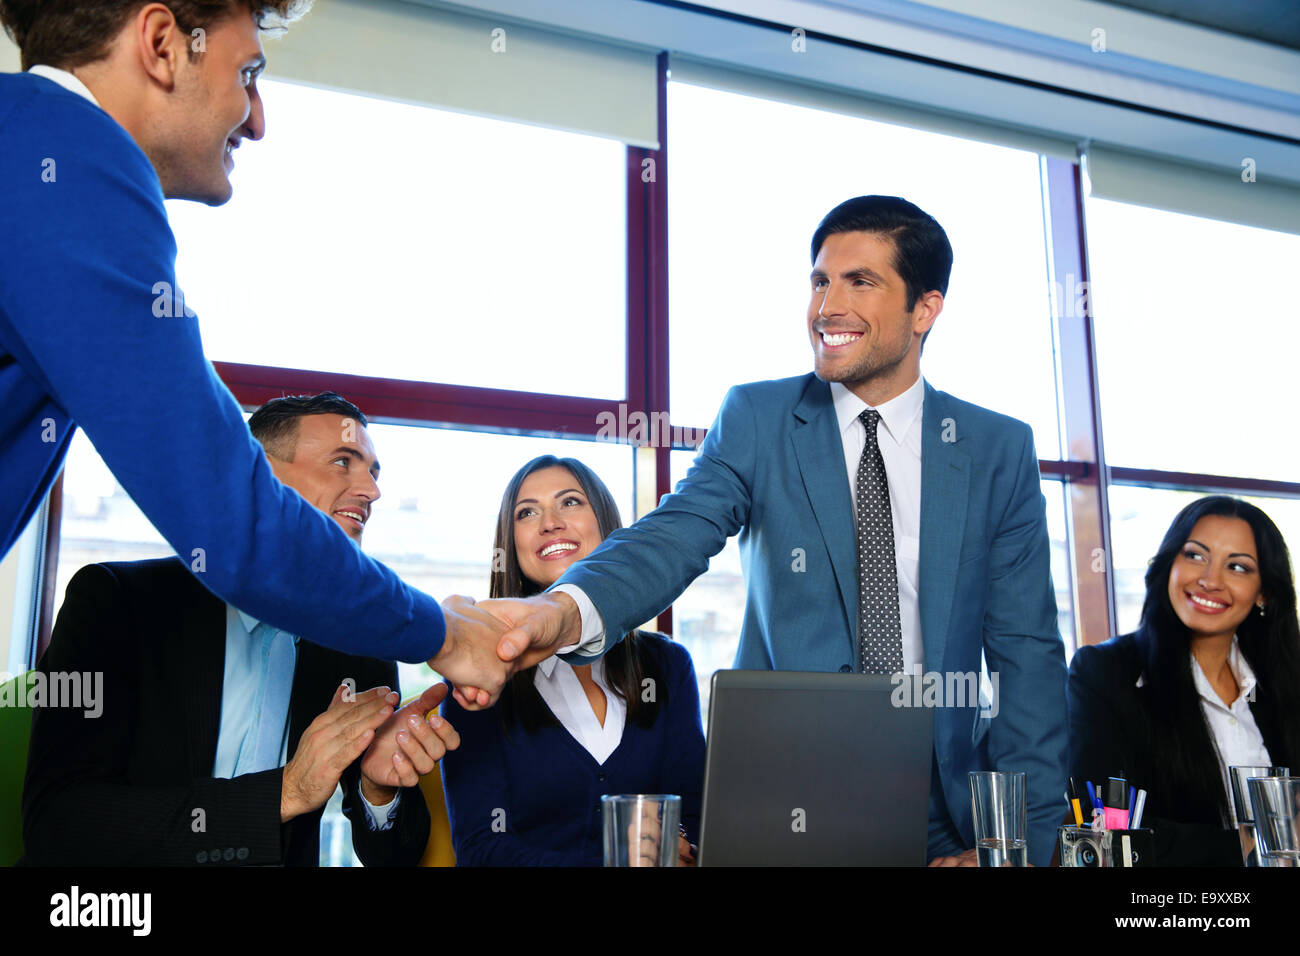 Business people sitting at the table while two of them shaking hands - Stock Image